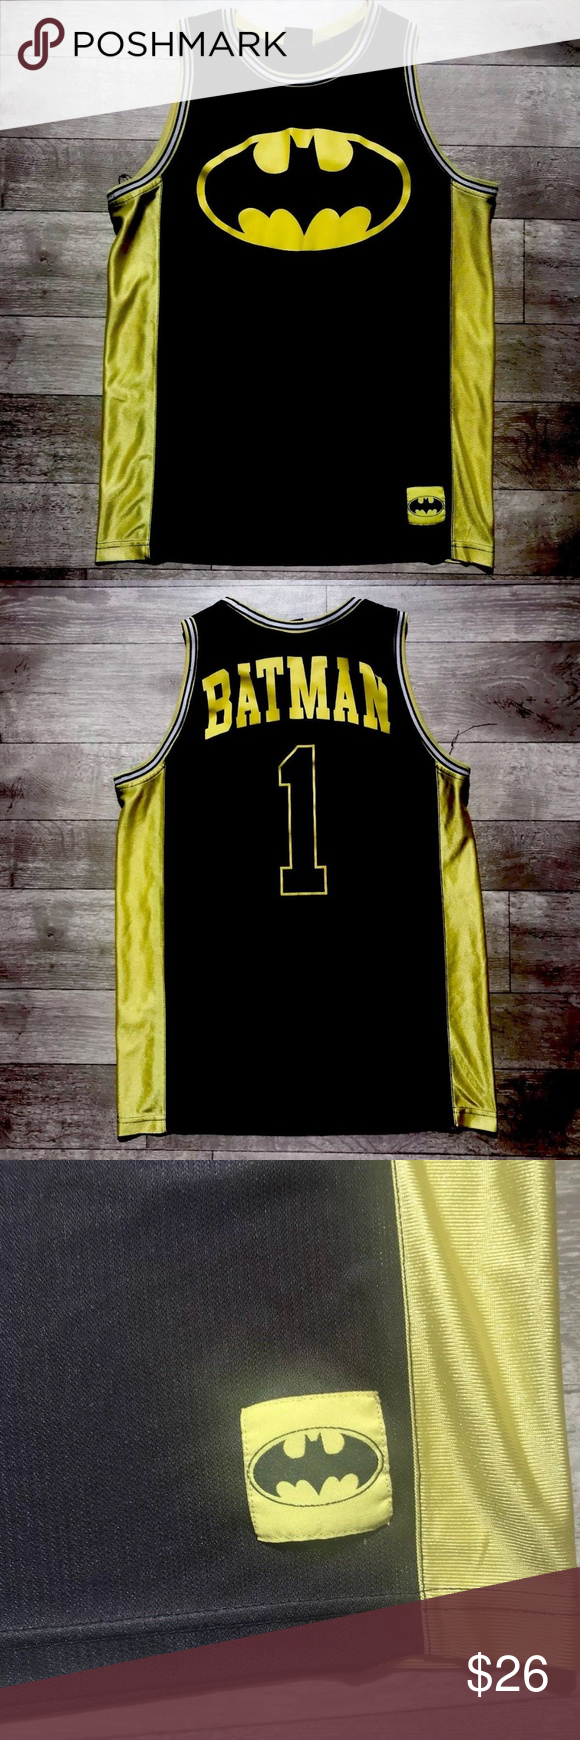 cf81e721dd6 Batman #1 DC Comic Surfer Skater Basketball Jersey Batman #1 DC Comics  Surfer Skater Basketball Jersey Tank Top Shirt Sz Small 14.